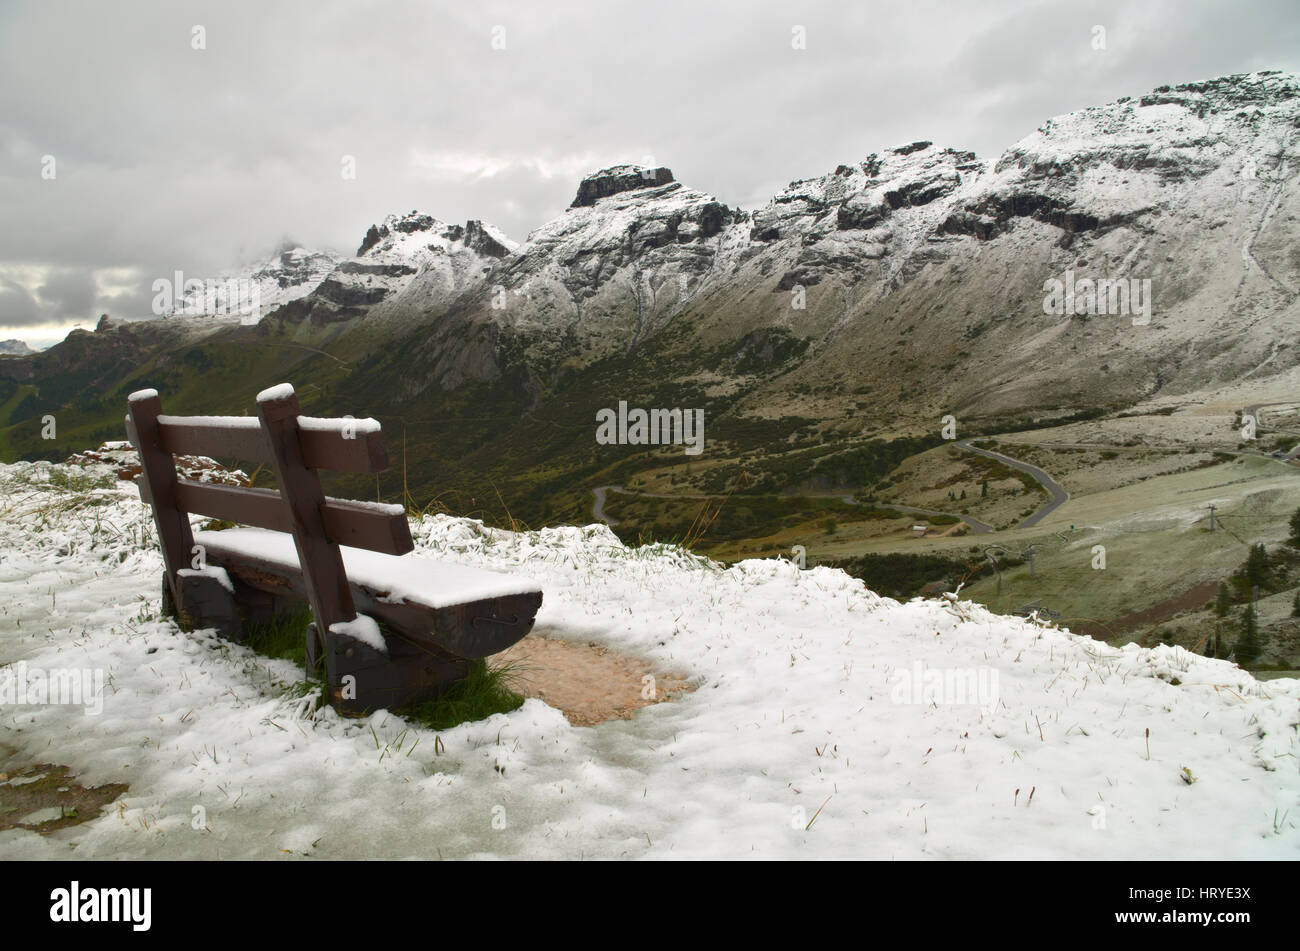 Passo Pordoi: bench covered by the first snow of the season on the Dolomiti mountains - Stock Image